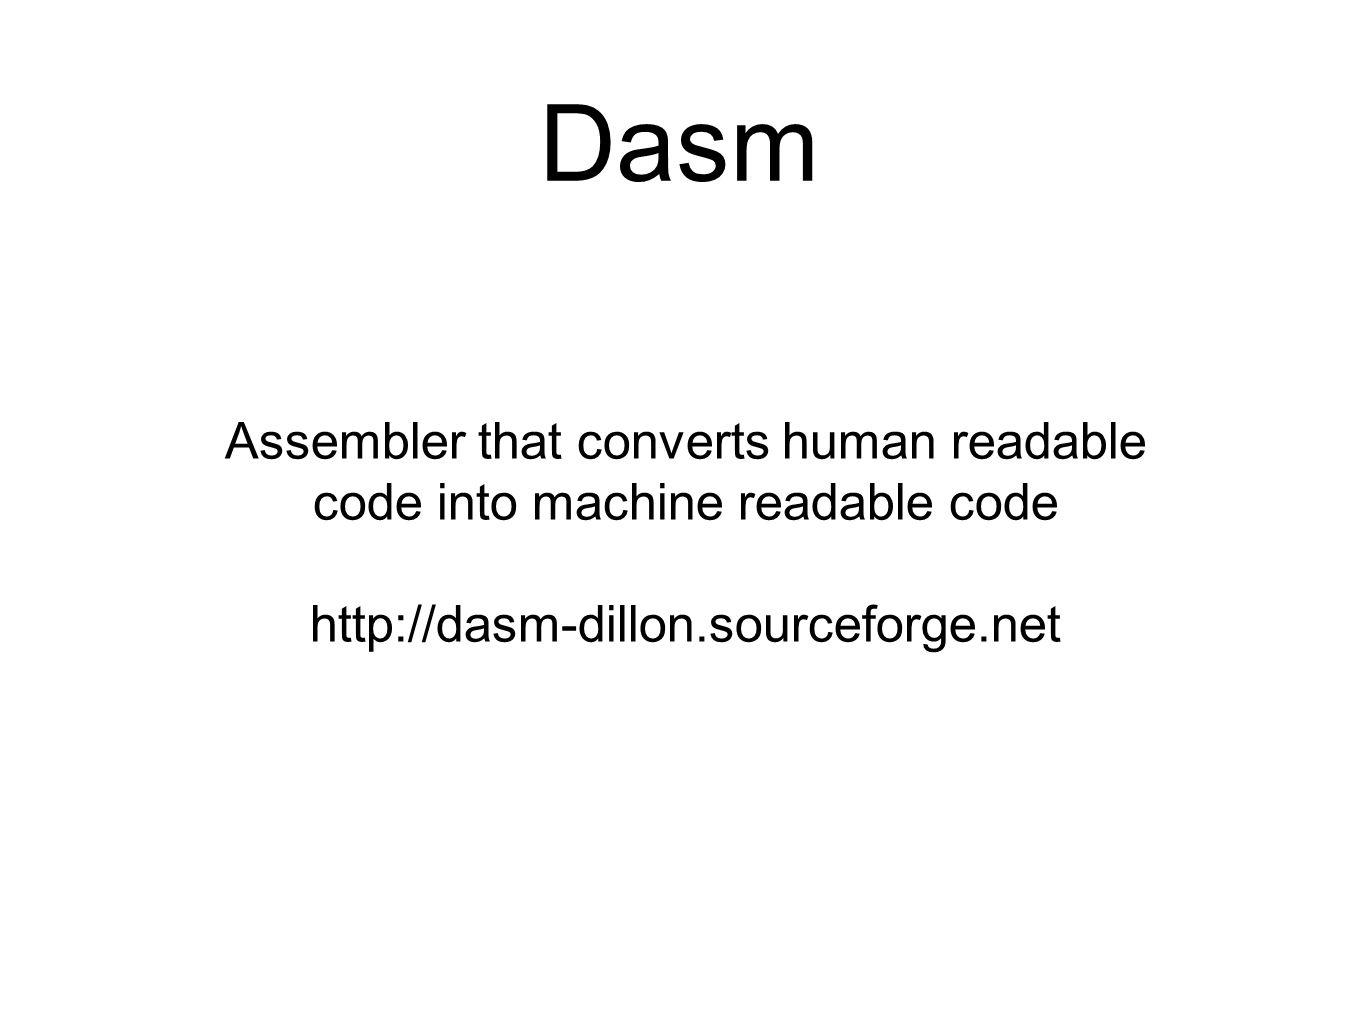 Dasm Assembler that converts human readable code into machine readable code http://dasm-dillon.sourceforge.net